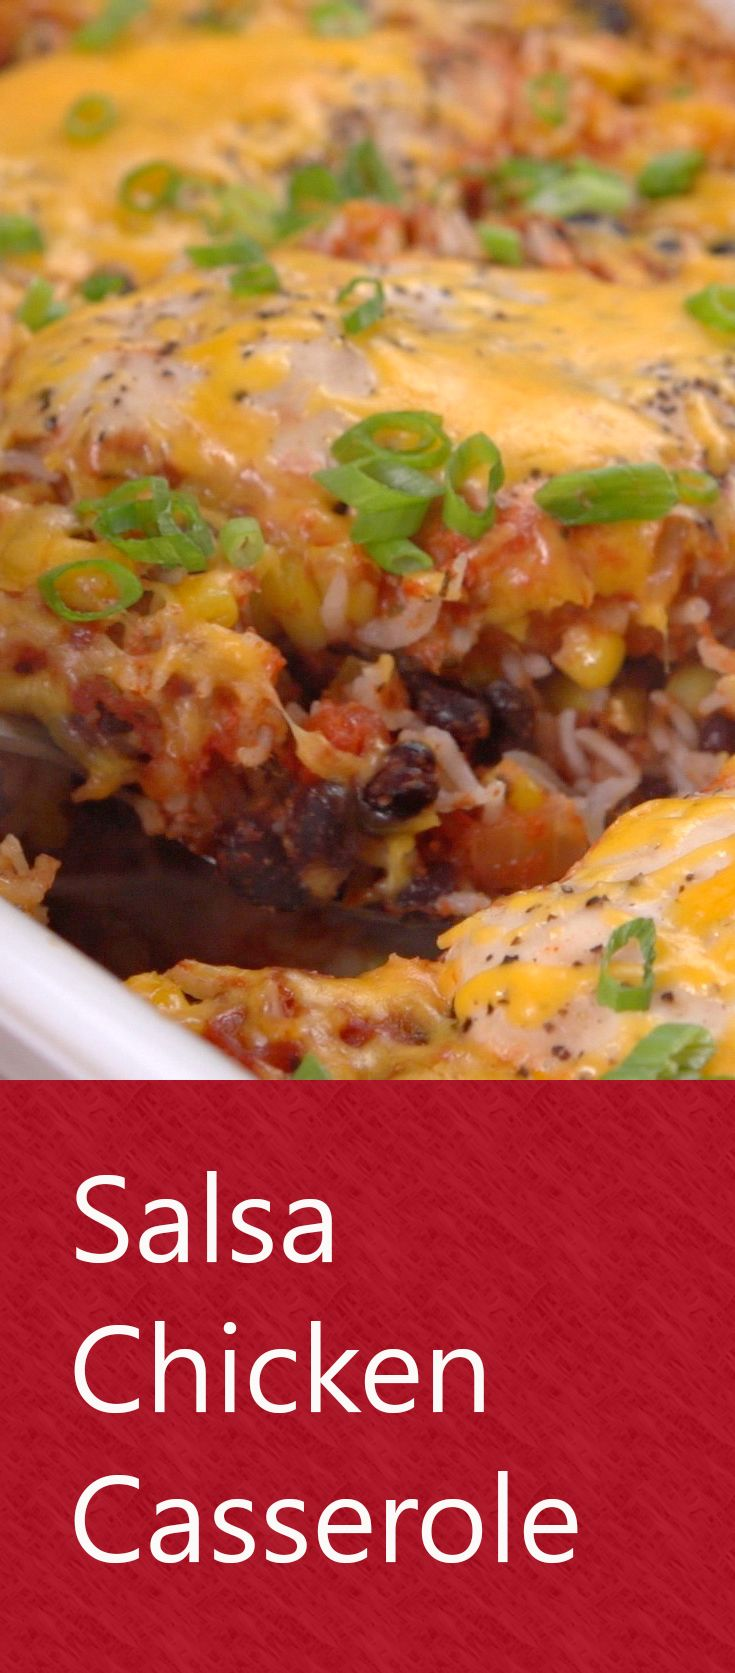 Salsa Chicken Casserole |Dinner doesn't get much easier than this— or tastier! Throw chicken, salsa, corn, rice and spices into a baking dish and toss it in the oven. In about an hour you'll have a deliciousTex-Mex meal the whole family will enjoy. And your budget will too. Click for the recipe and how-to video. #familydinner #budgetfriendlyrecipes #easyrecipes #dinnertime